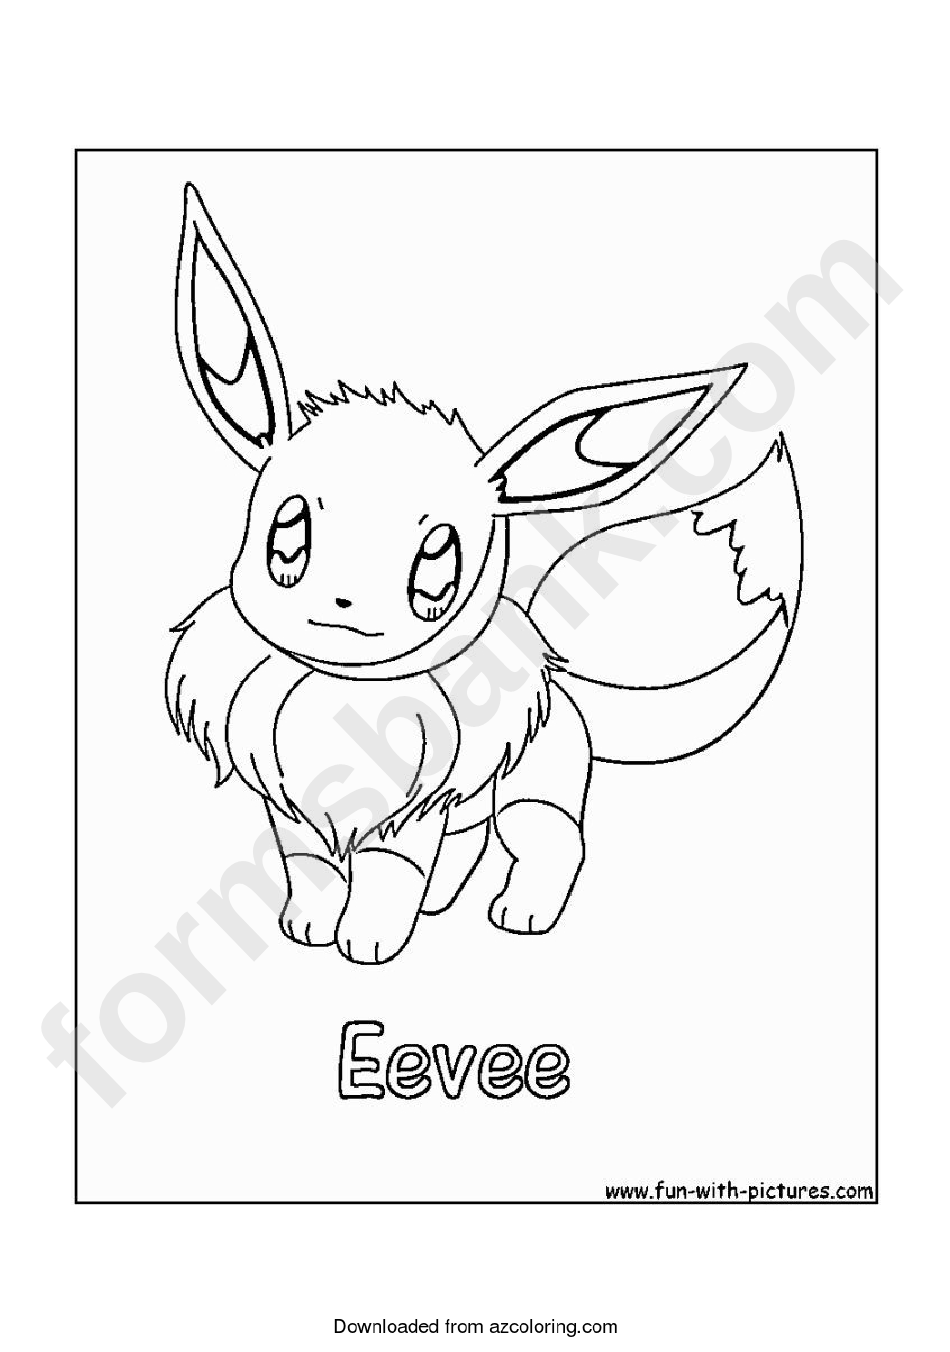 Pokemon Coloring Pages Eevee : pokemon, coloring, pages, eevee, Eevee, Coloring, Unique, Collection, Gacha, Pages.